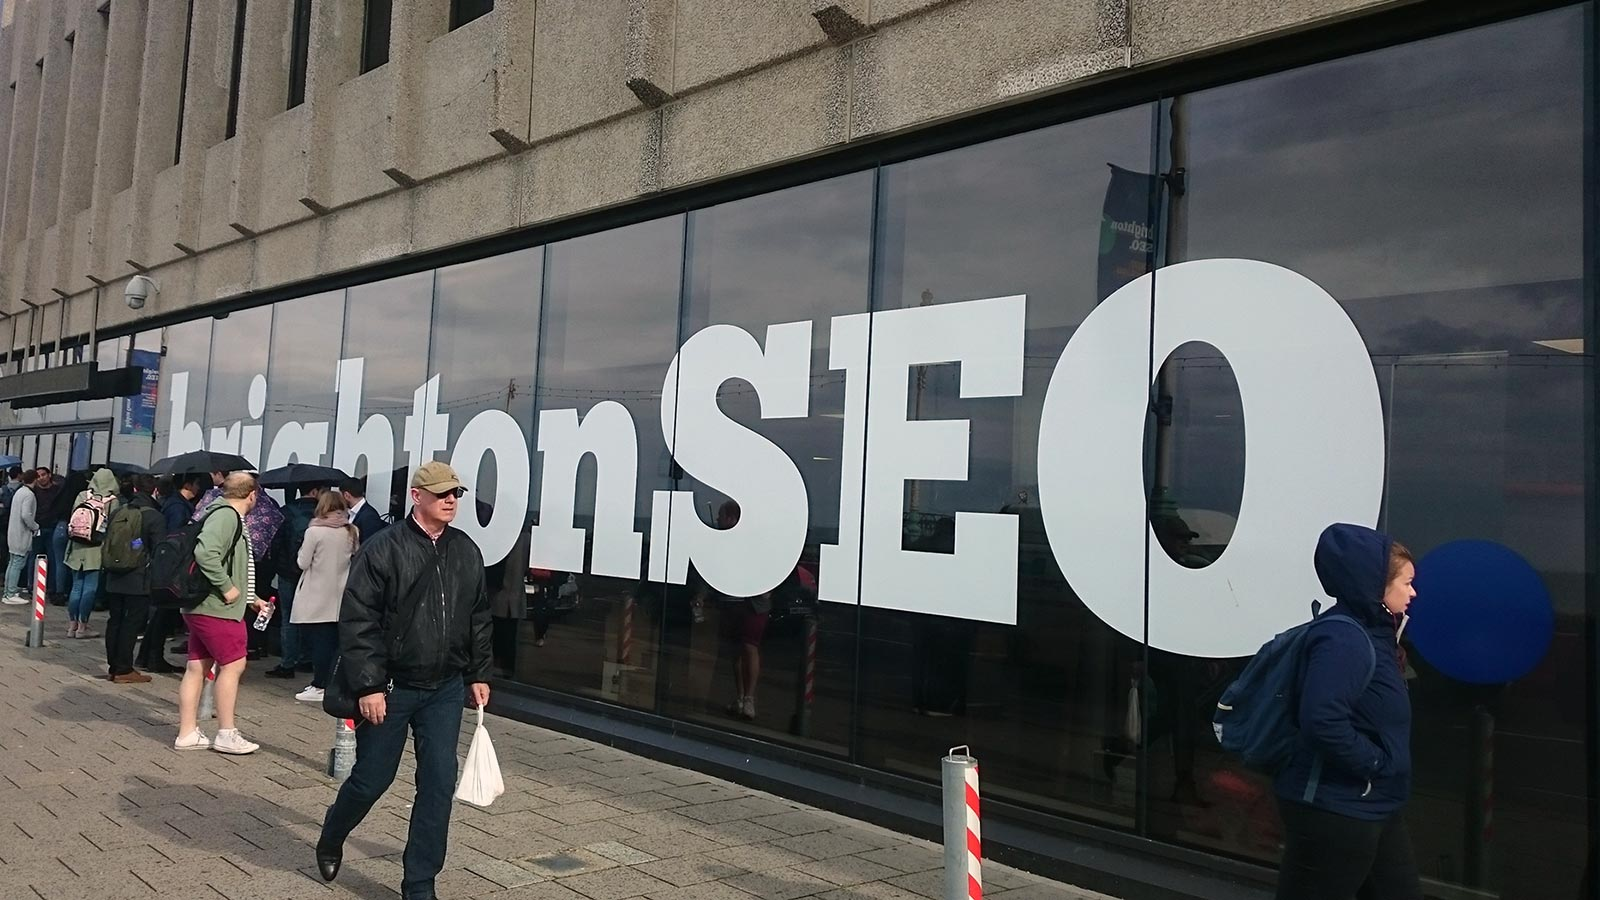 #brightonSEO conference branding